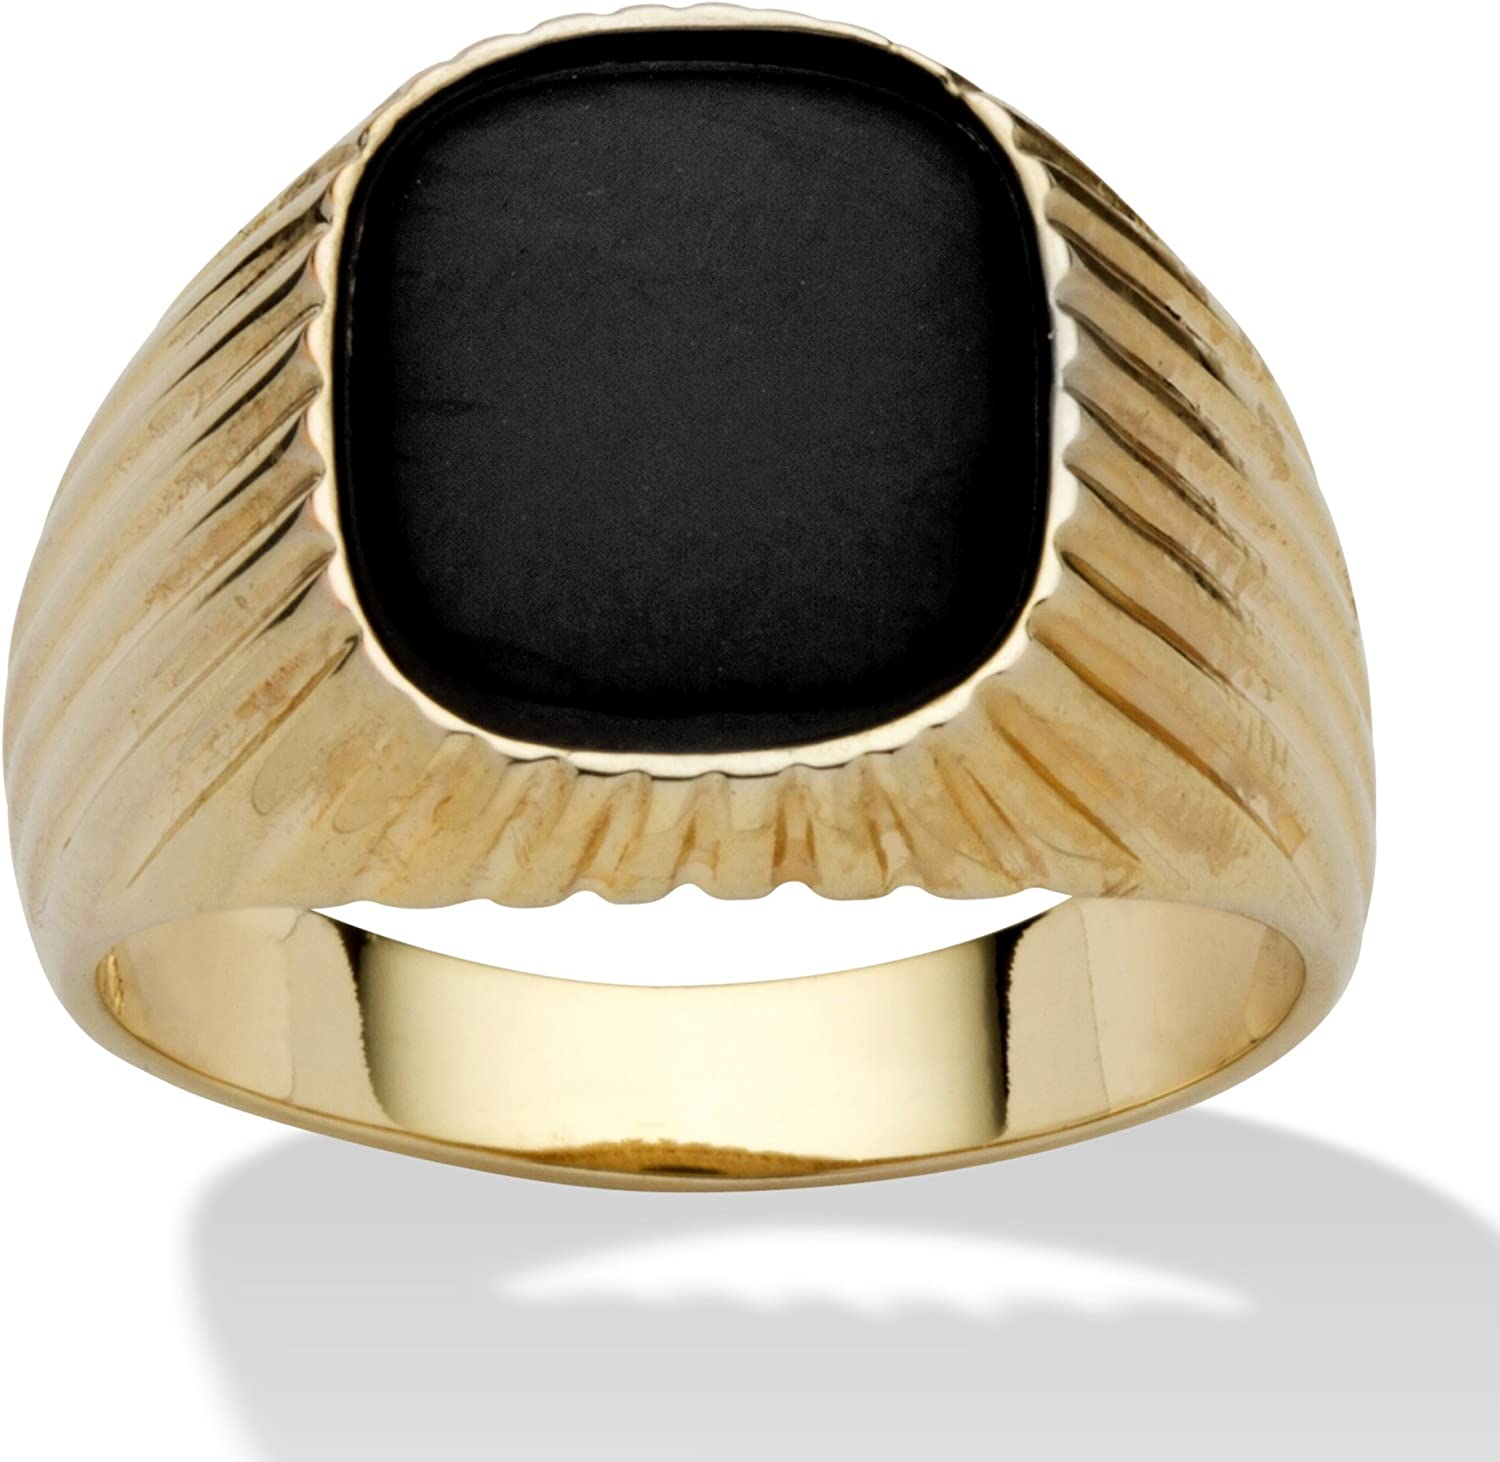 Palm Beach Jewelry Men's 14K Yellow Gold Plated Rectangular Shaped Natural Black Onyx Ribbed Ring